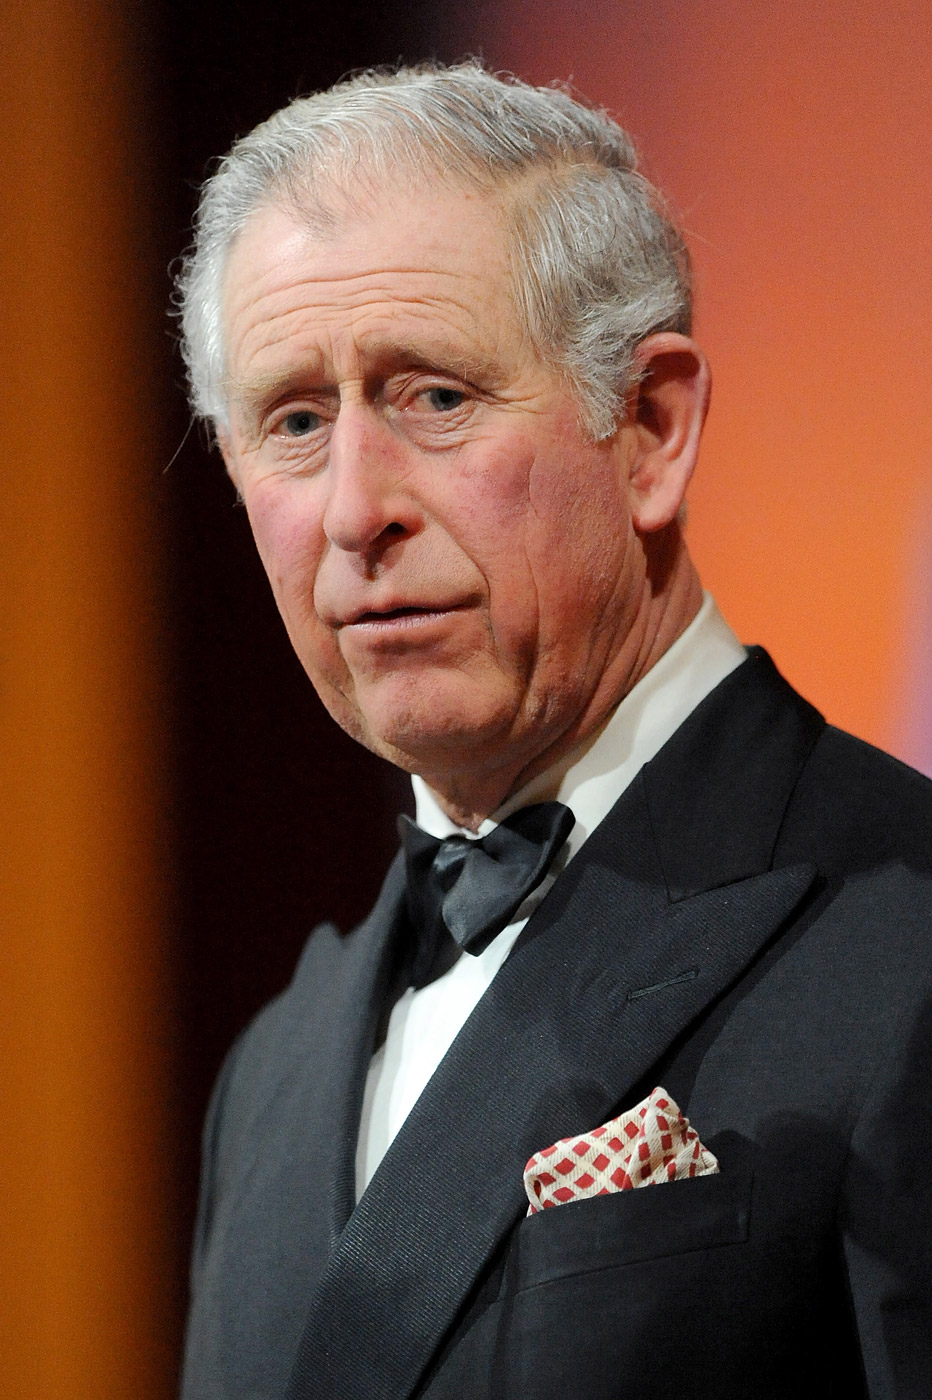 Prince Charles, Prince of Wales, gives a speech as he attends the British Asian Trust dinner at Banqueting House on Feb. 3, 2015 in London, England.